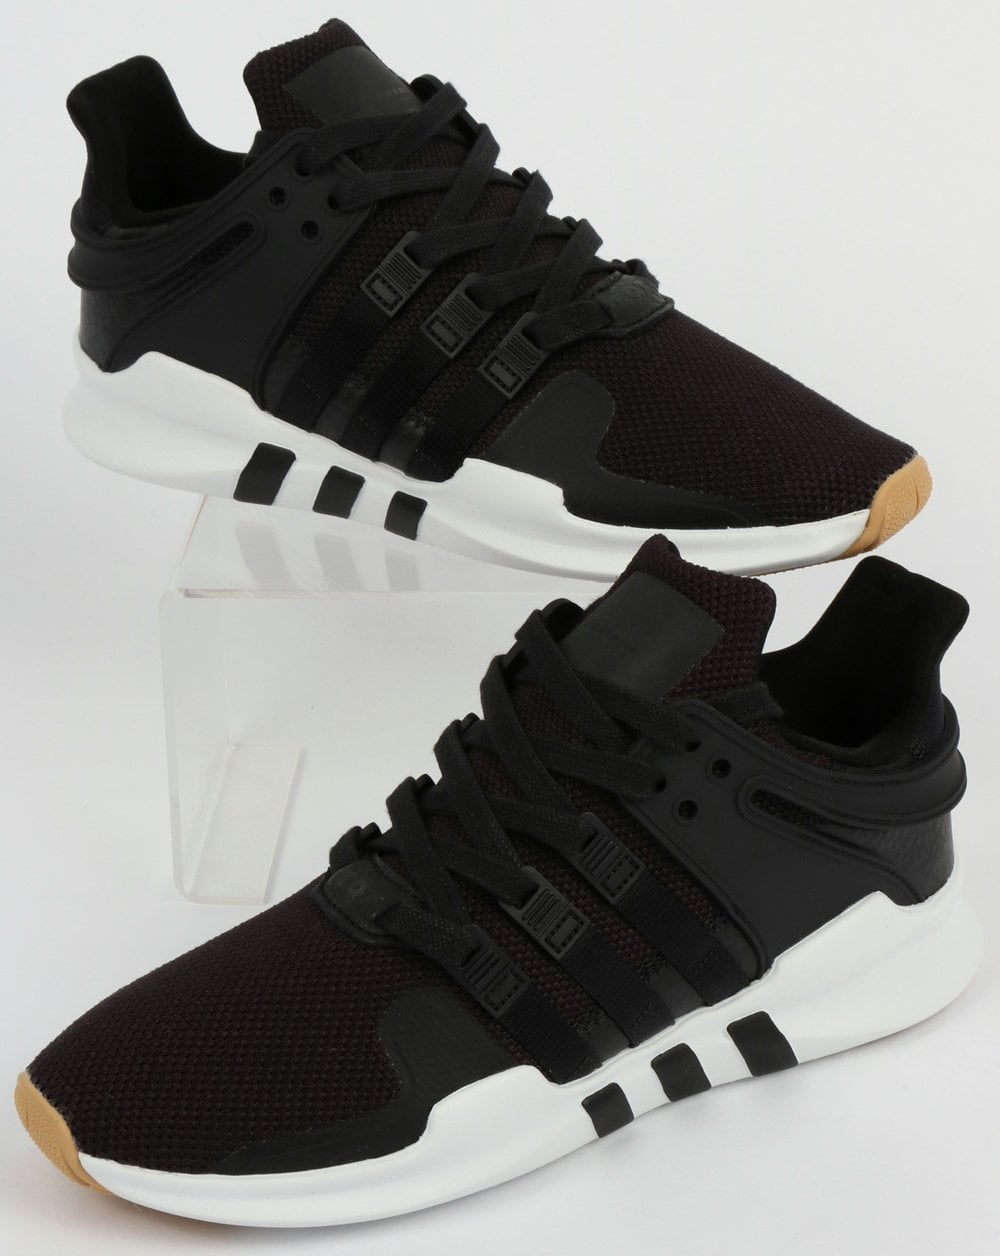 half off 4fbe7 7800e Adidas EQT Support Adv Trainers Black/White/Gum